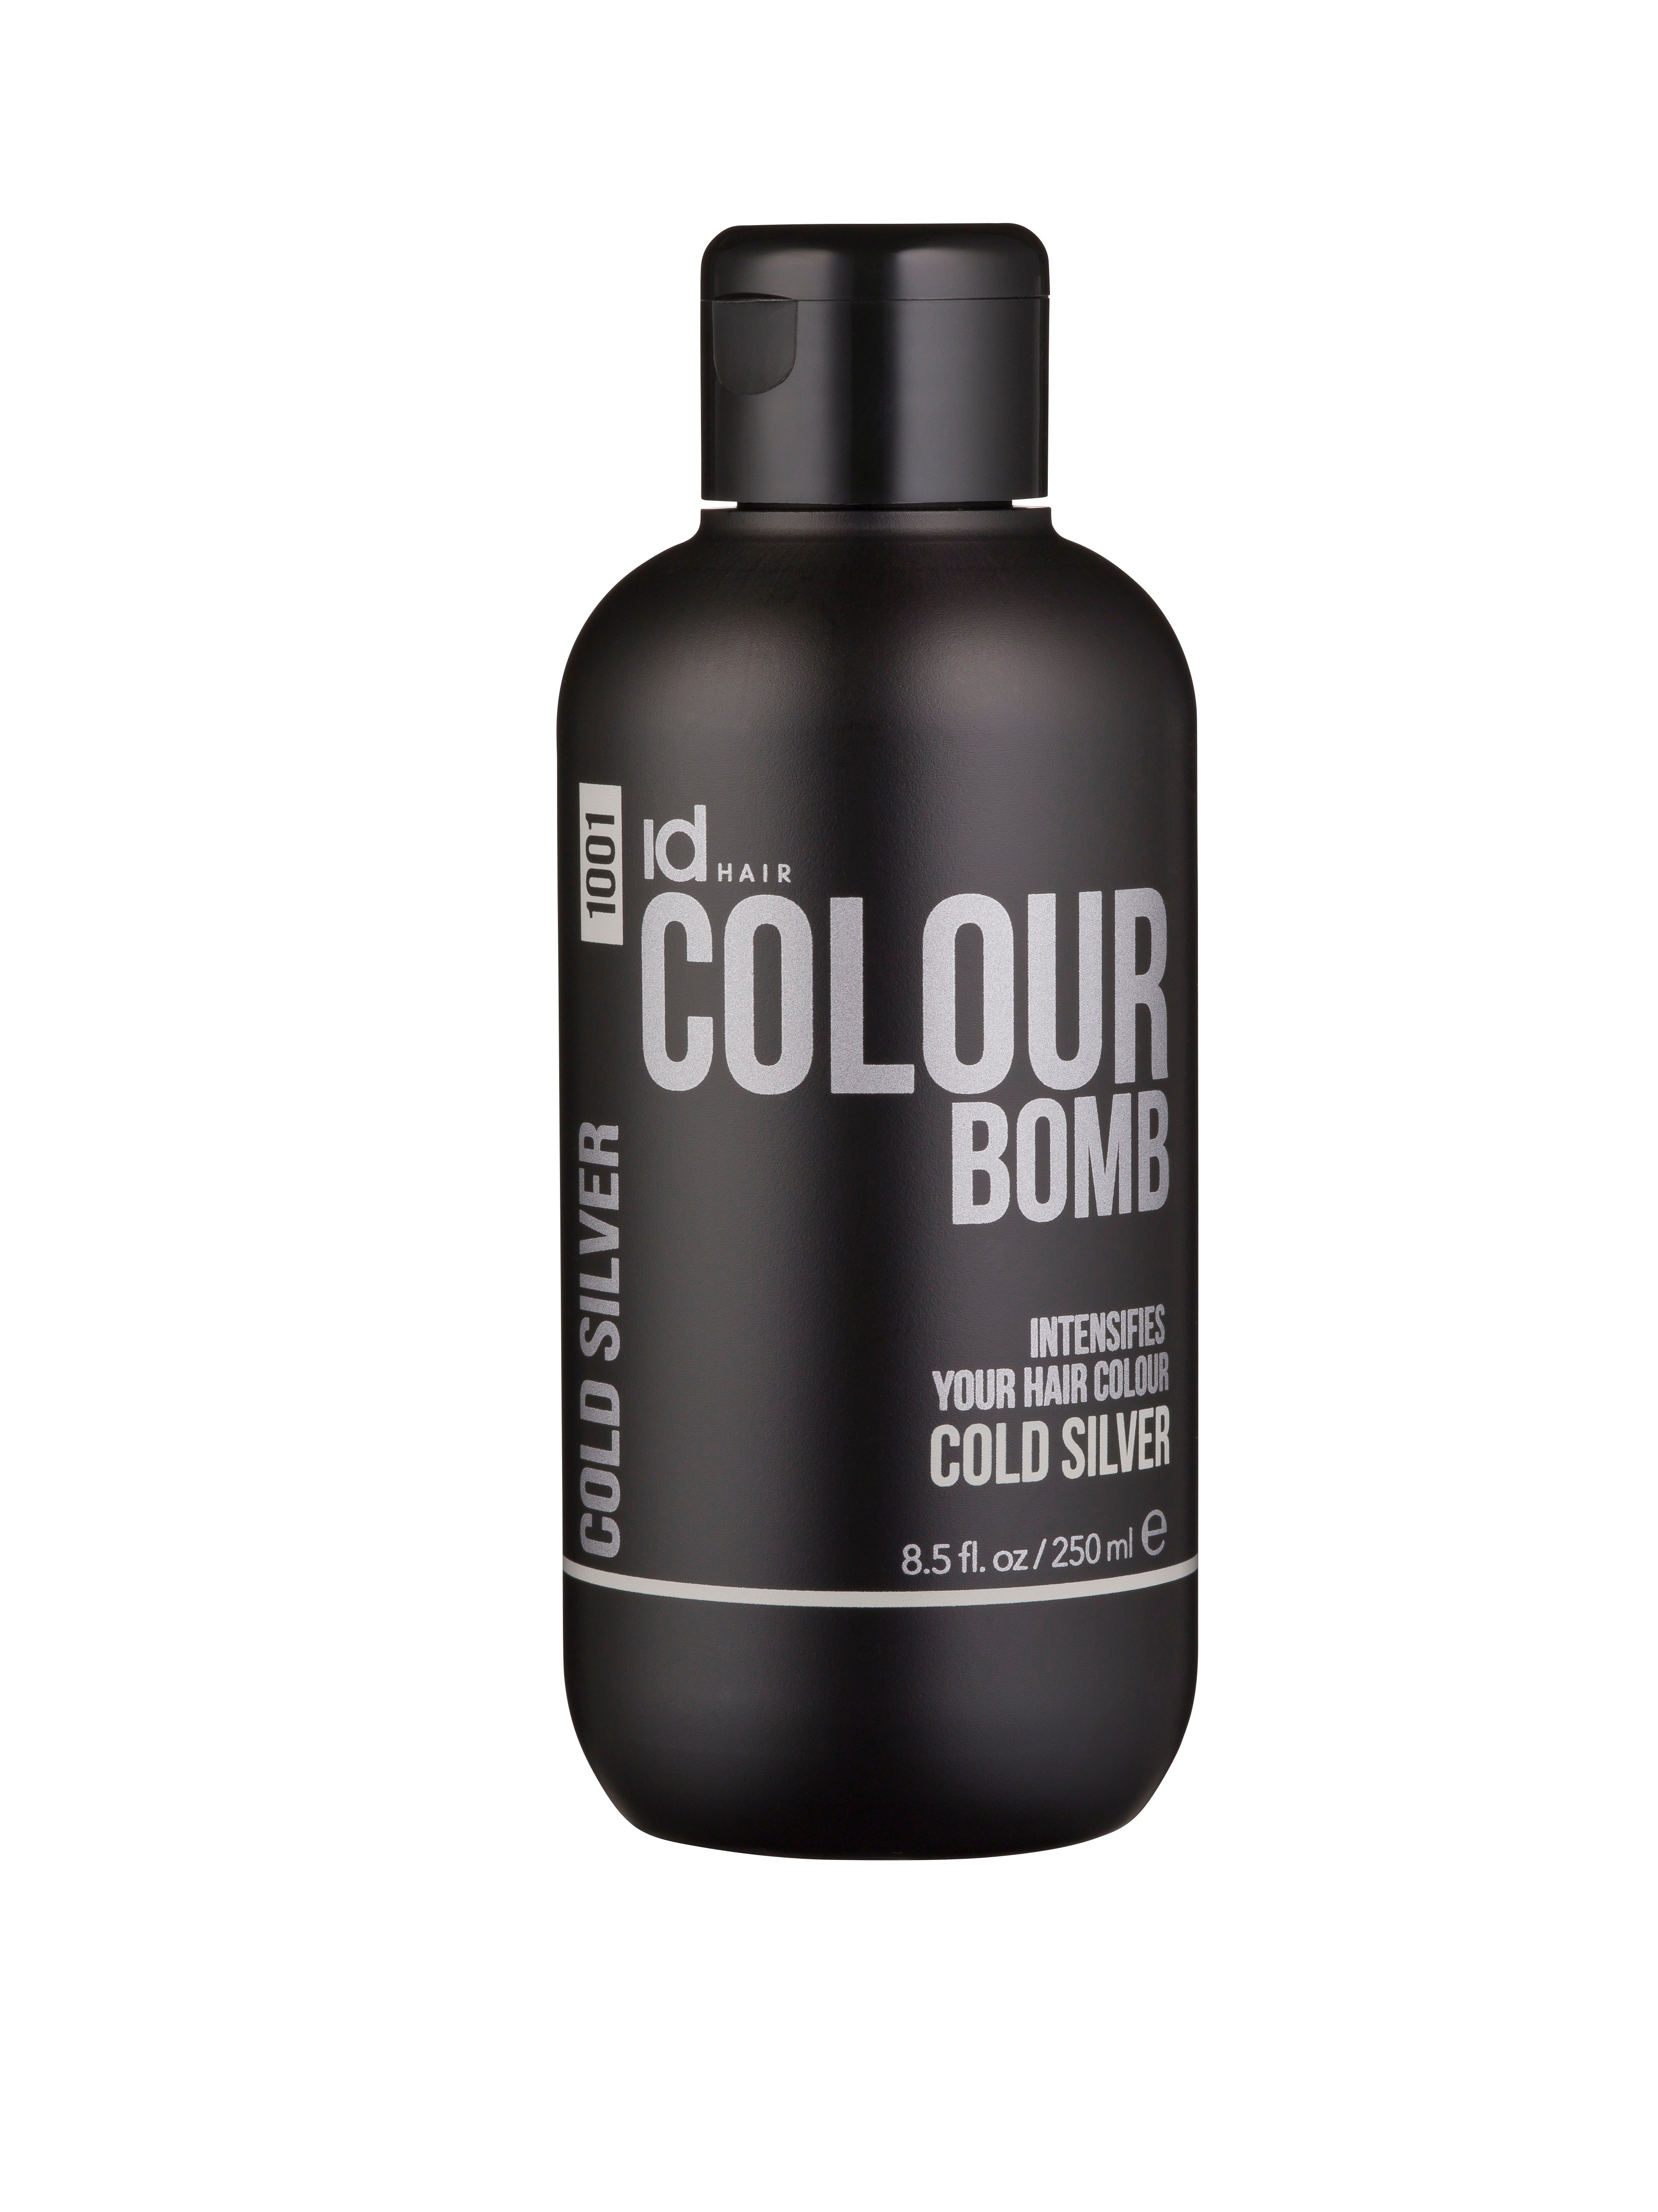 IdHAIR - Colour Bomb 250 ml - Cold Silver